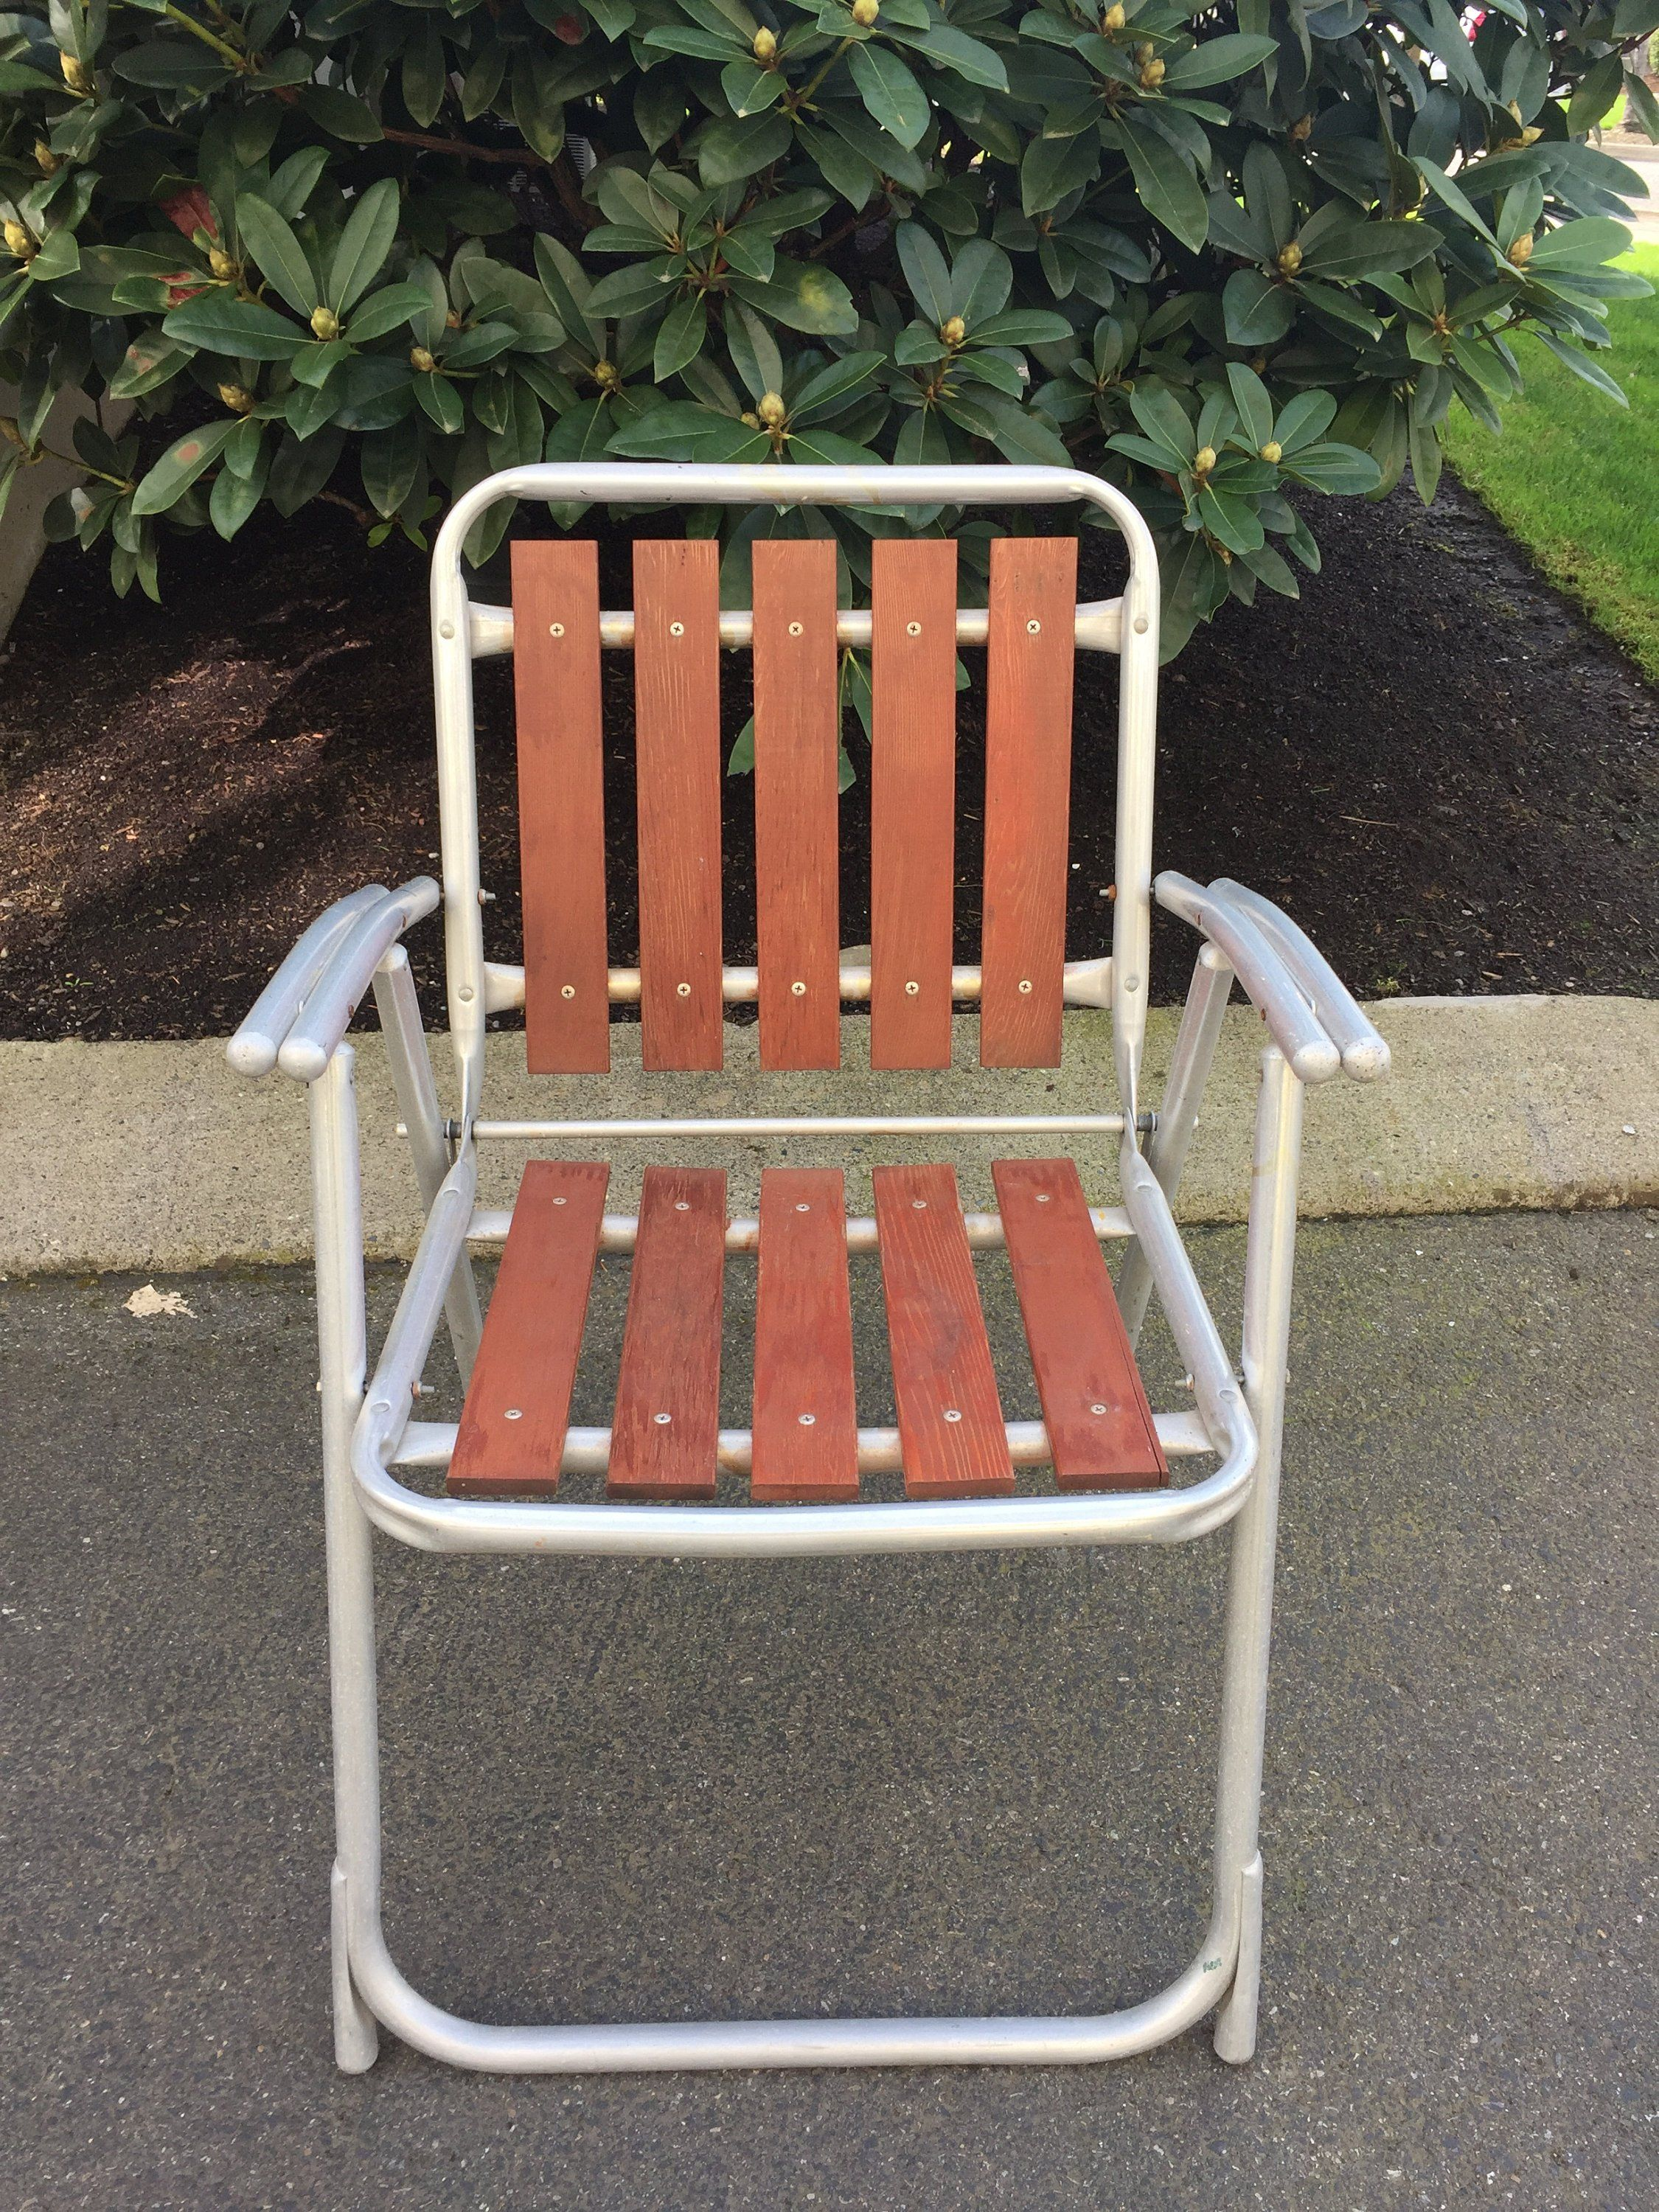 Brilliant Vintage Lawn Chair Aluminum Wood Lawn Chair Patio Lawn Ibusinesslaw Wood Chair Design Ideas Ibusinesslaworg